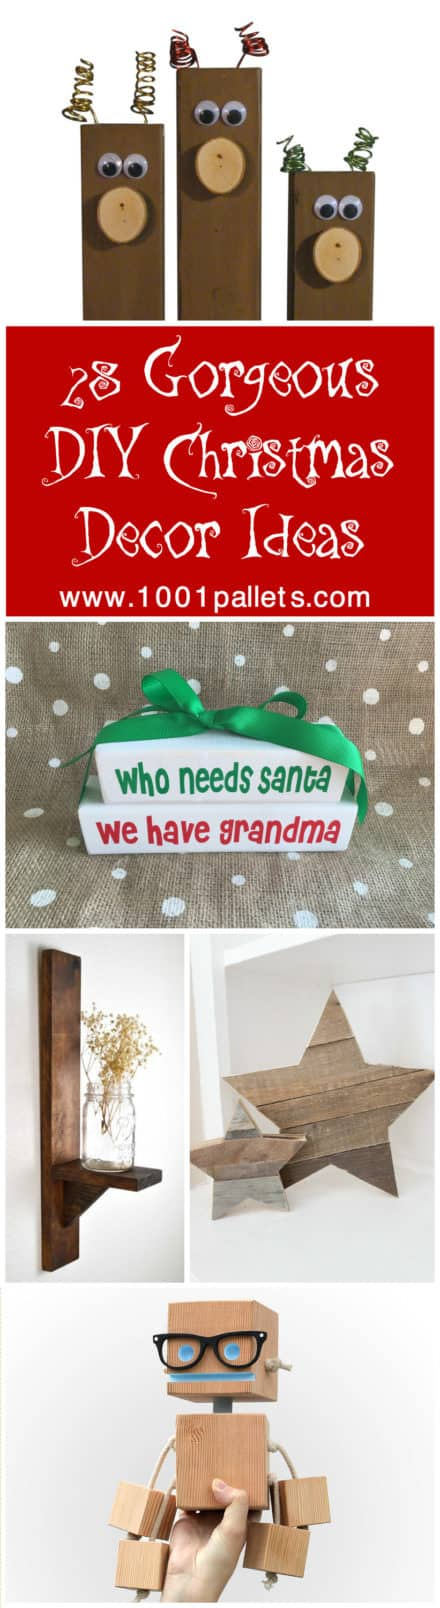 28 Gorgeous DIY Christmas Décor Ideas